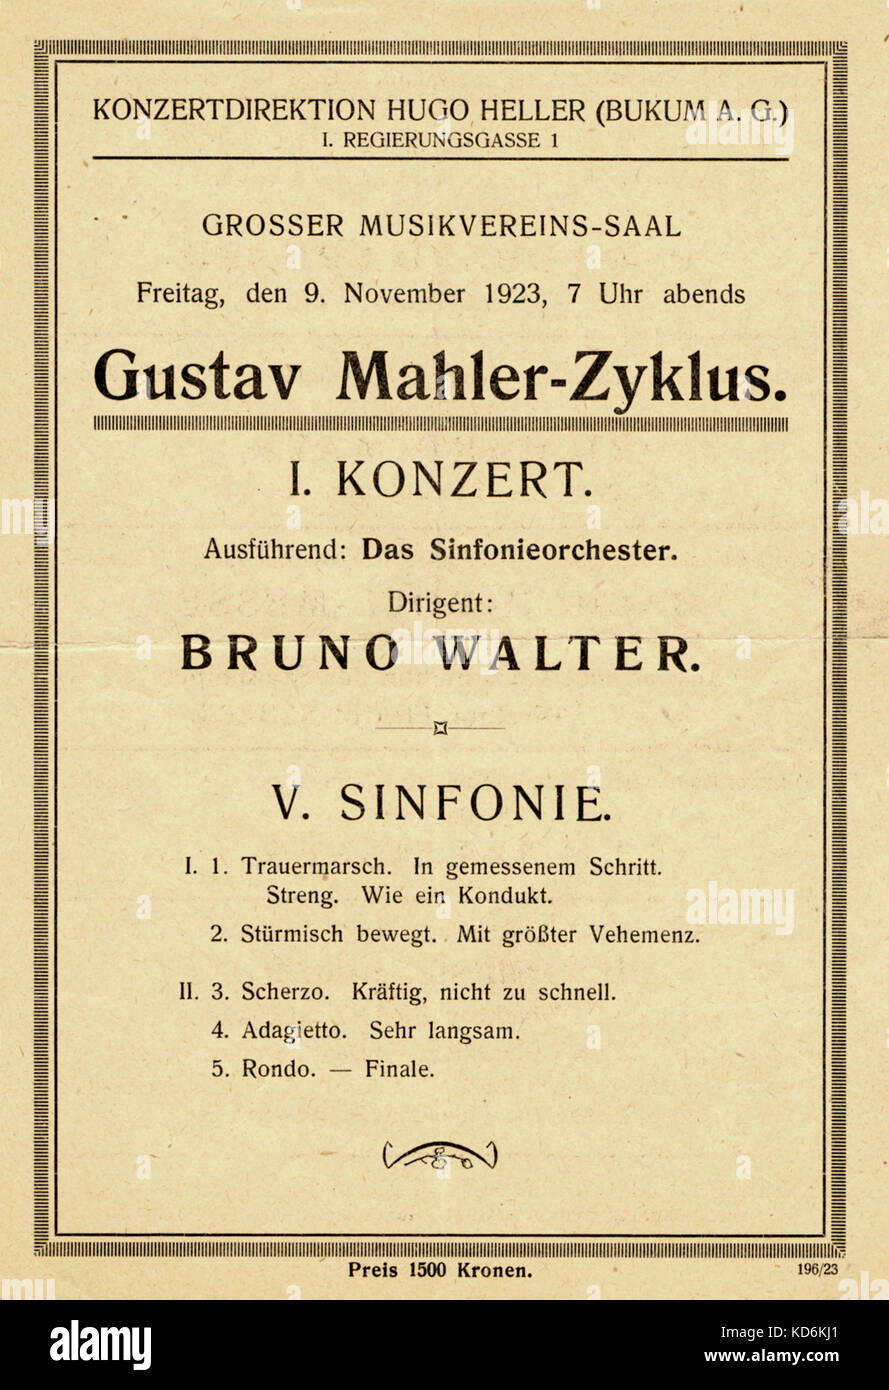 Programme for Gustav Mahler's 5th Symphony conducted by Bruno Walter 9th November 1923  at Grosser Musikvereins - Stock Image